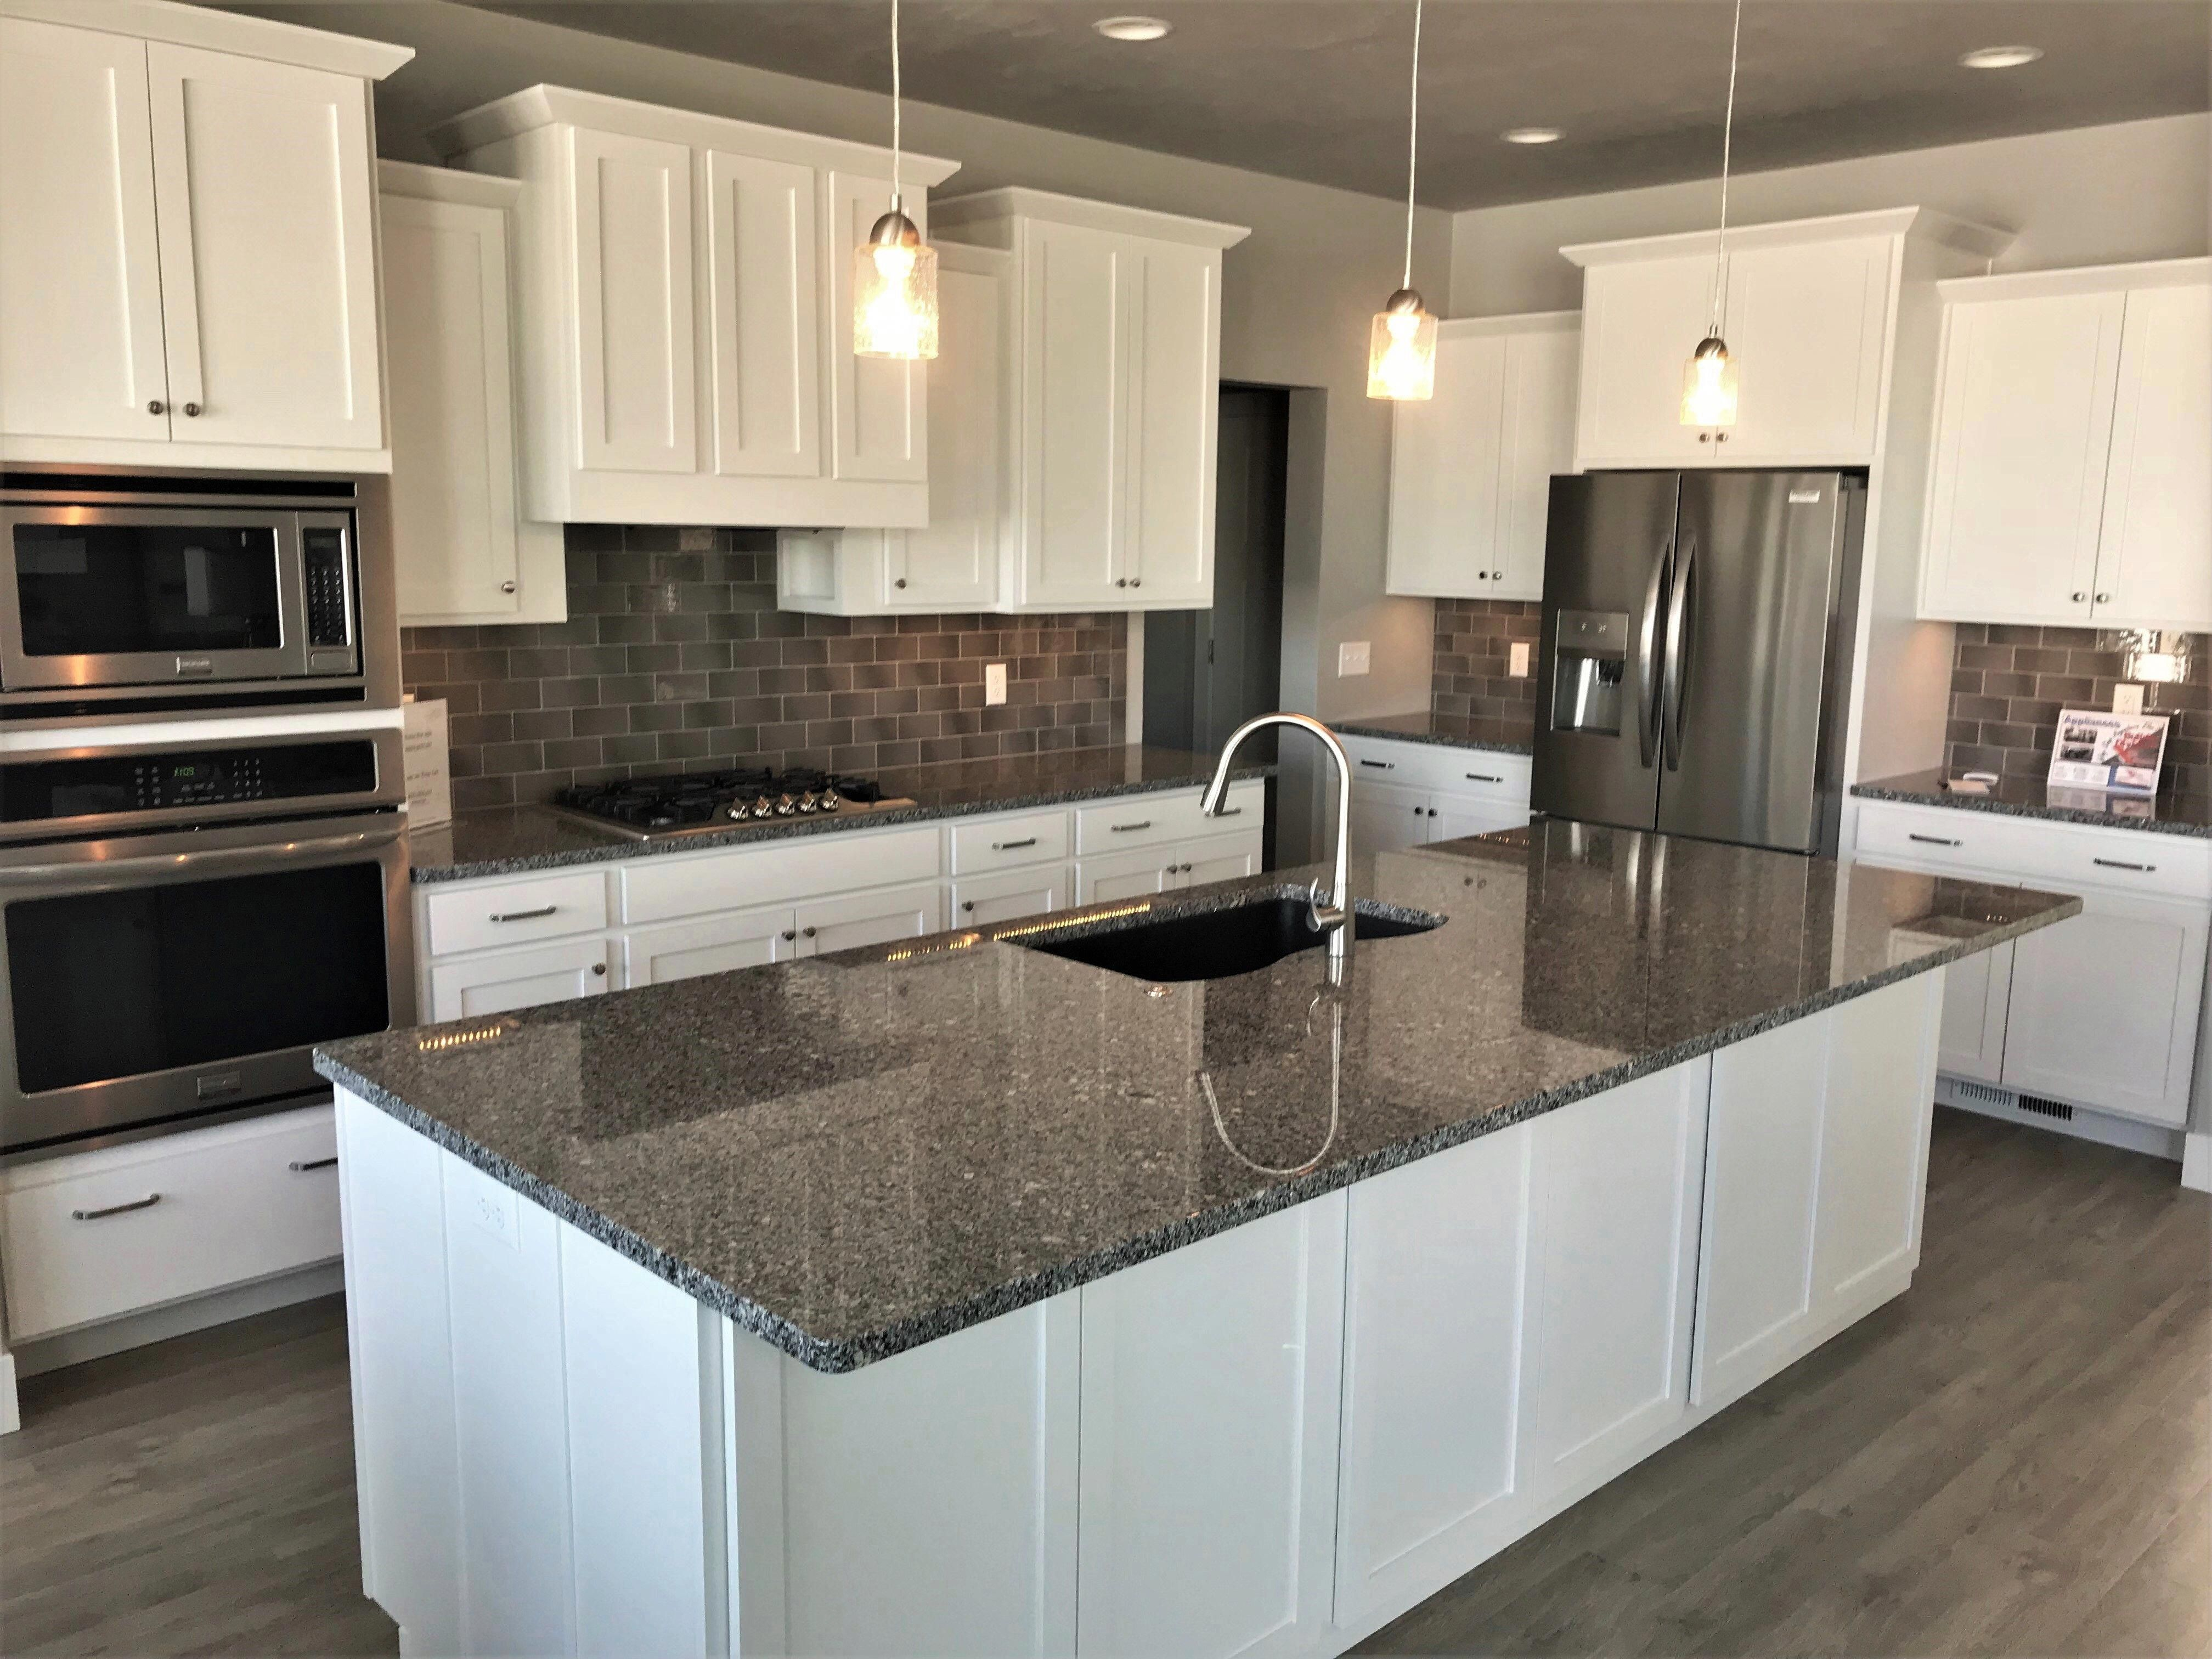 White Cabinets With A Stunning Azul Platino Granite Countertop Kitchencounter Granite Countertops Kitchen White Granite Countertops Black Granite Countertops